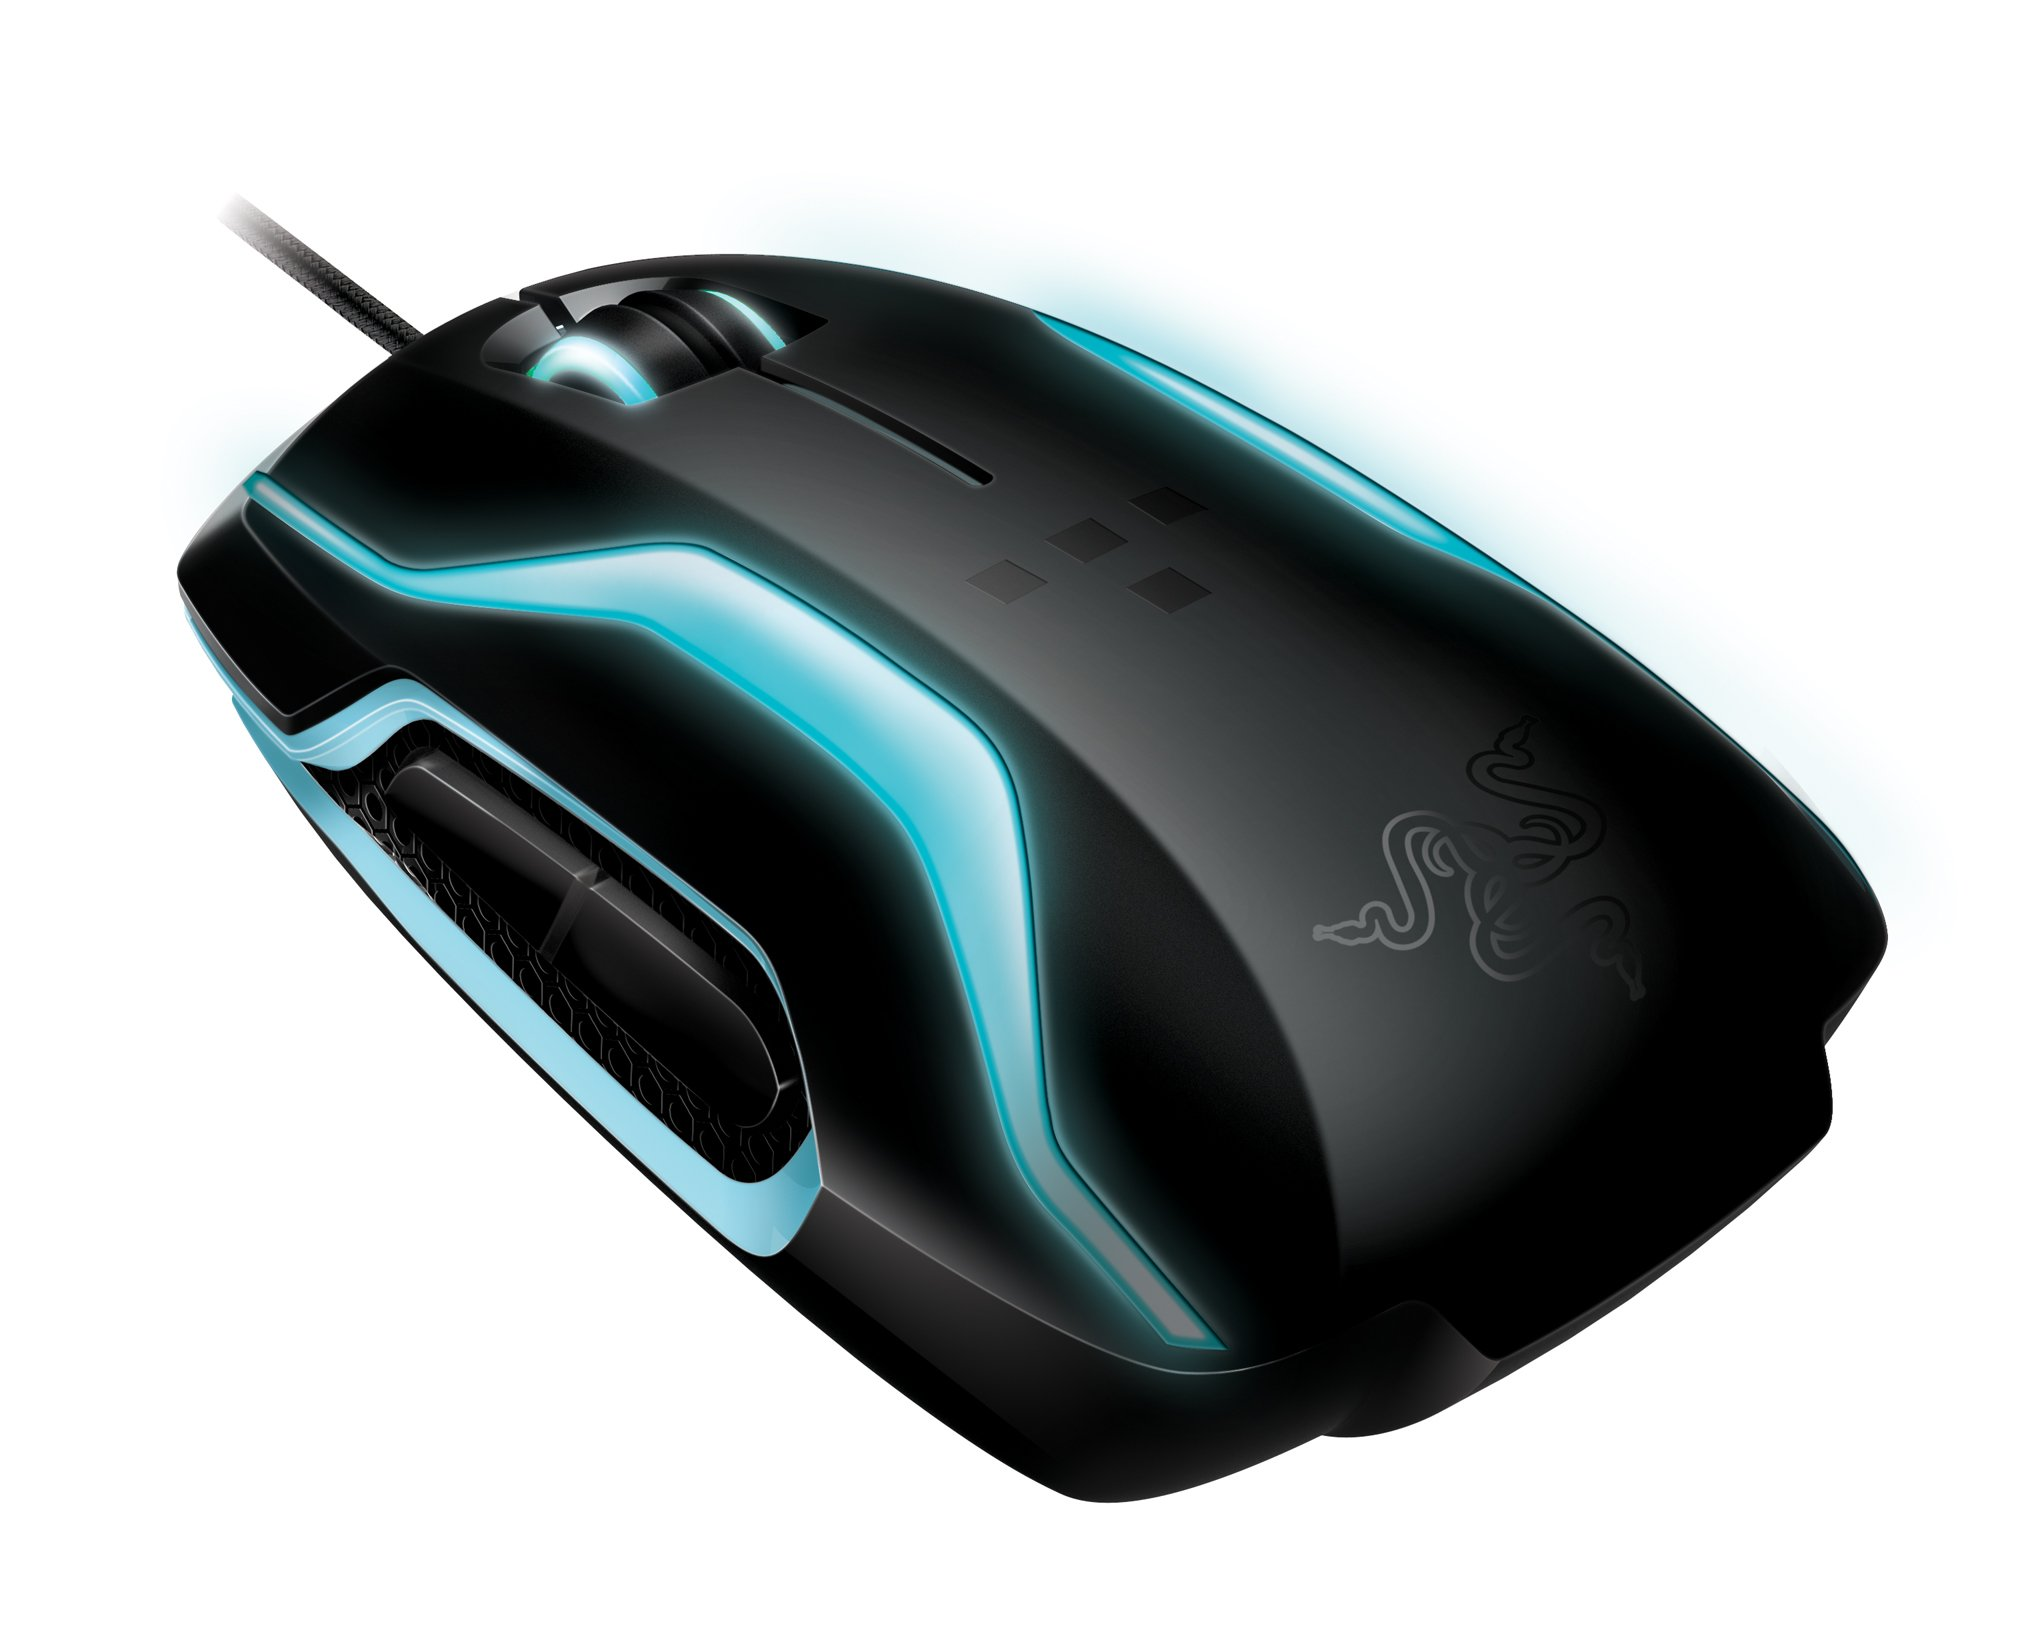 Mouse Gamer : Razer TRON